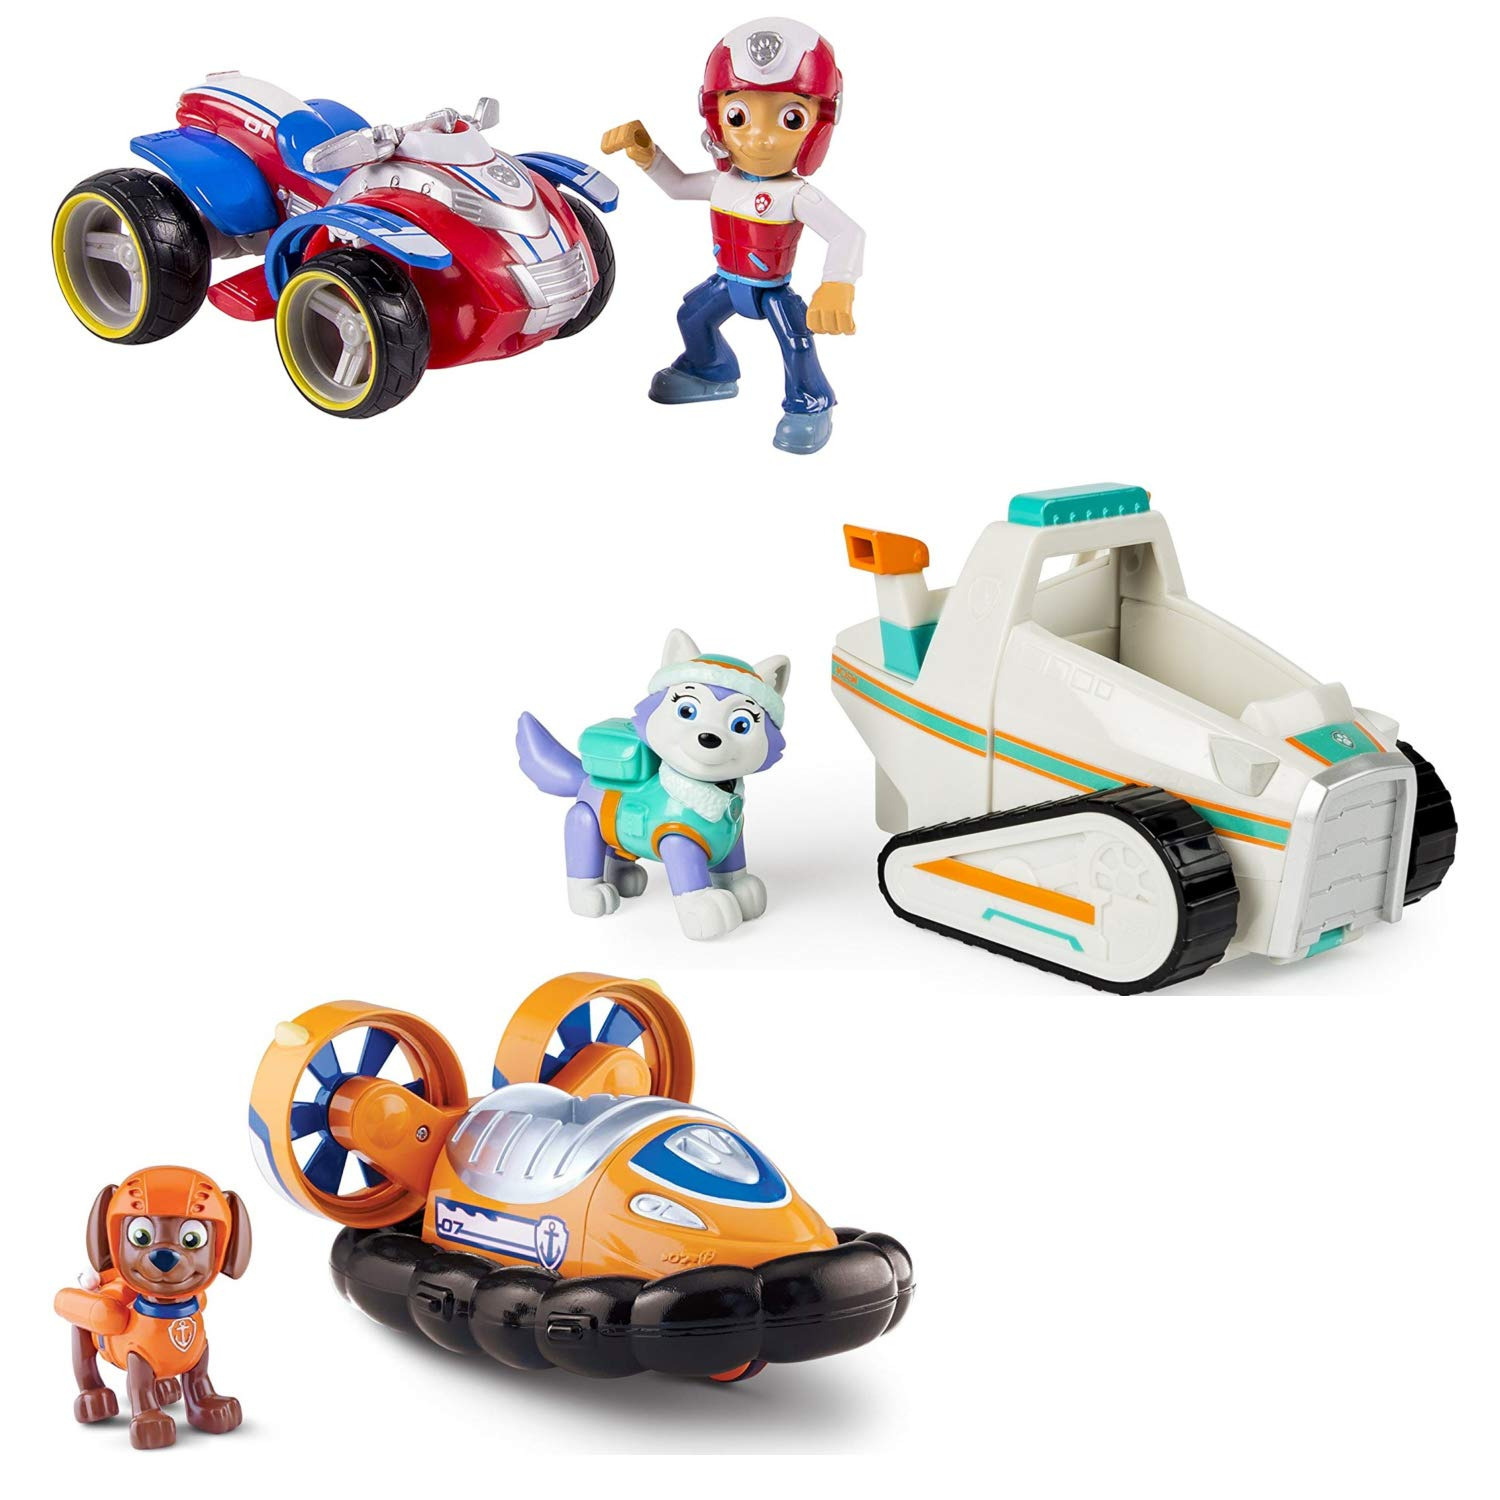 Paw Patrol Ryder's Rescue ATV, Paw Patrol Everest's Rescue Snowmobile, and Paw Patrol Zuma's Hovercraft, Vehicle and Figure, Bundle